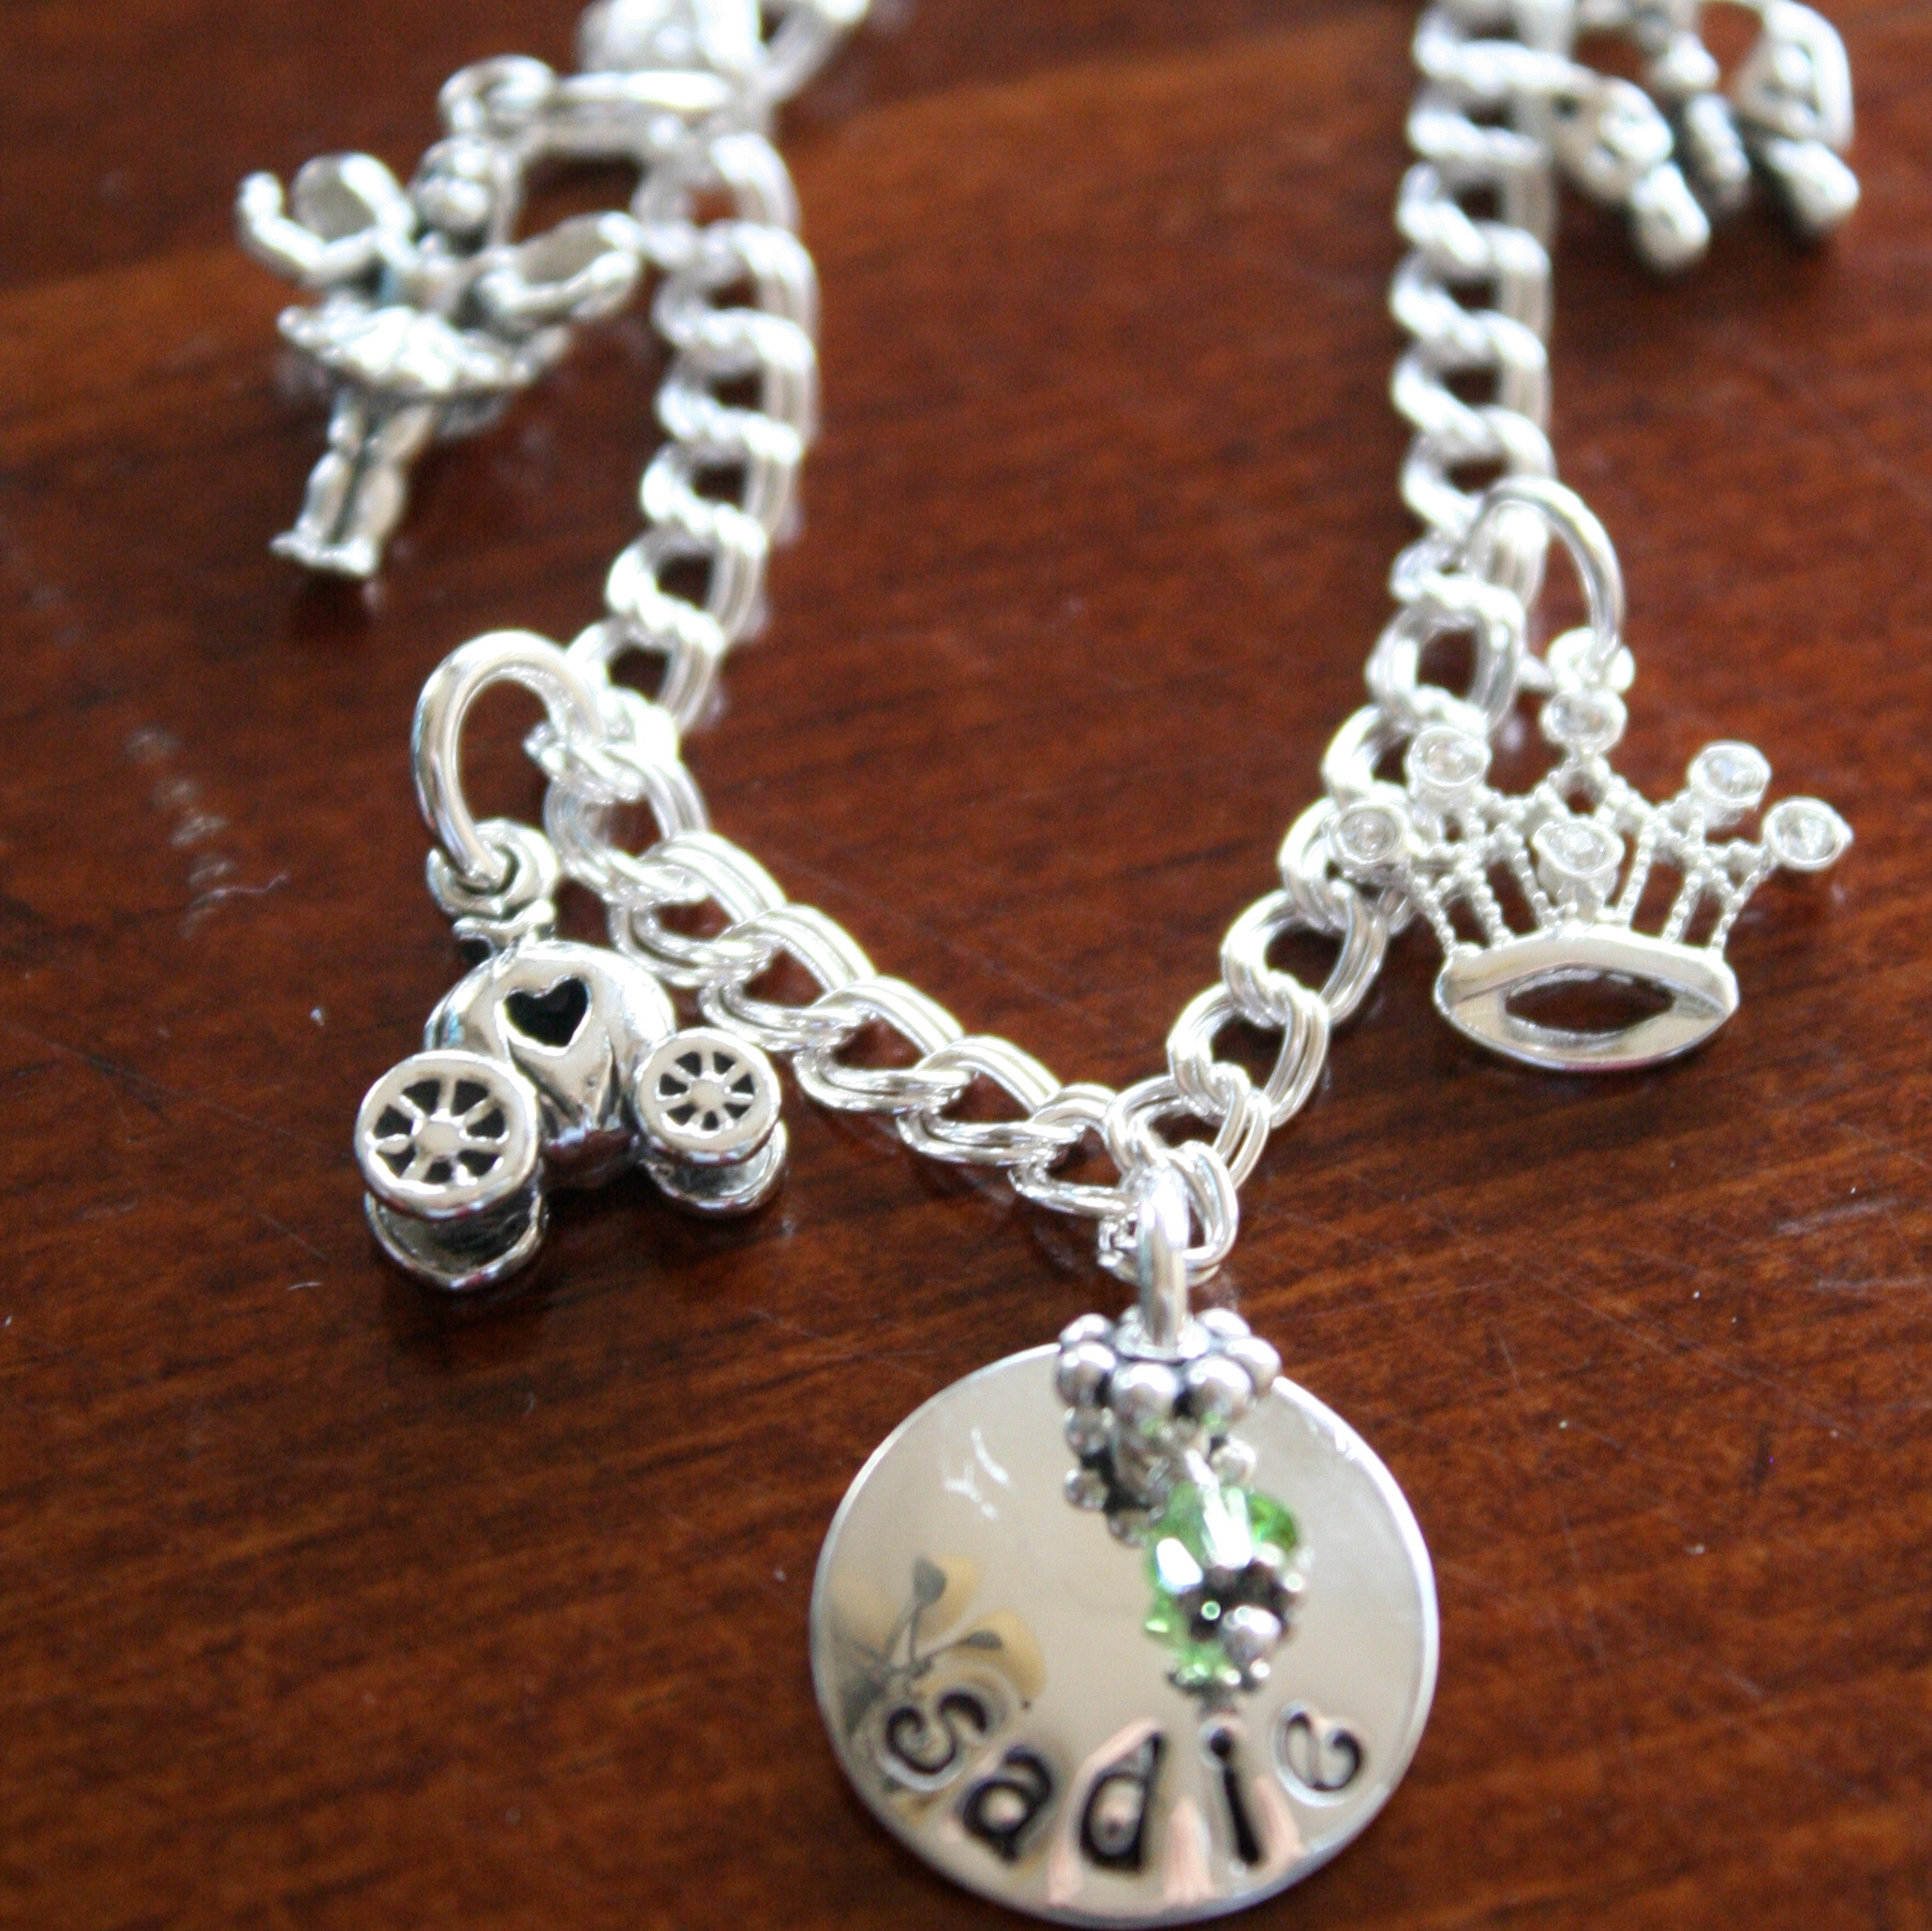 Big sister personalized necklace or charm bracelet gift k amp s